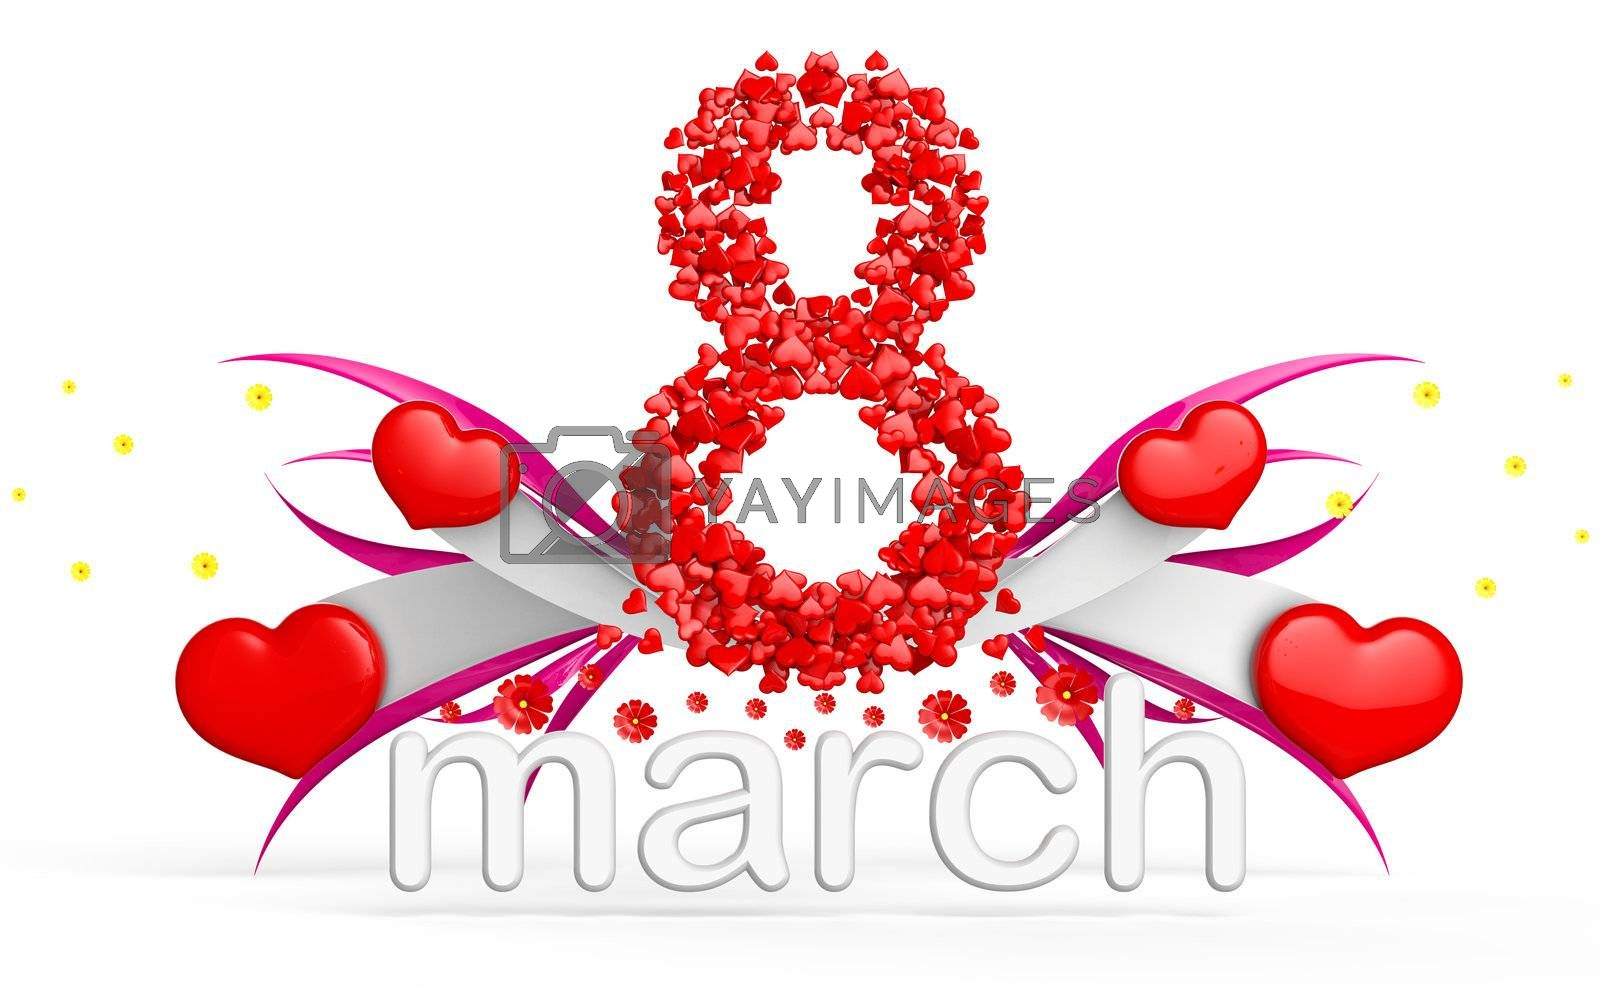 digit eight consisting of red hearts as element of decorations for March 8. International Women's Day